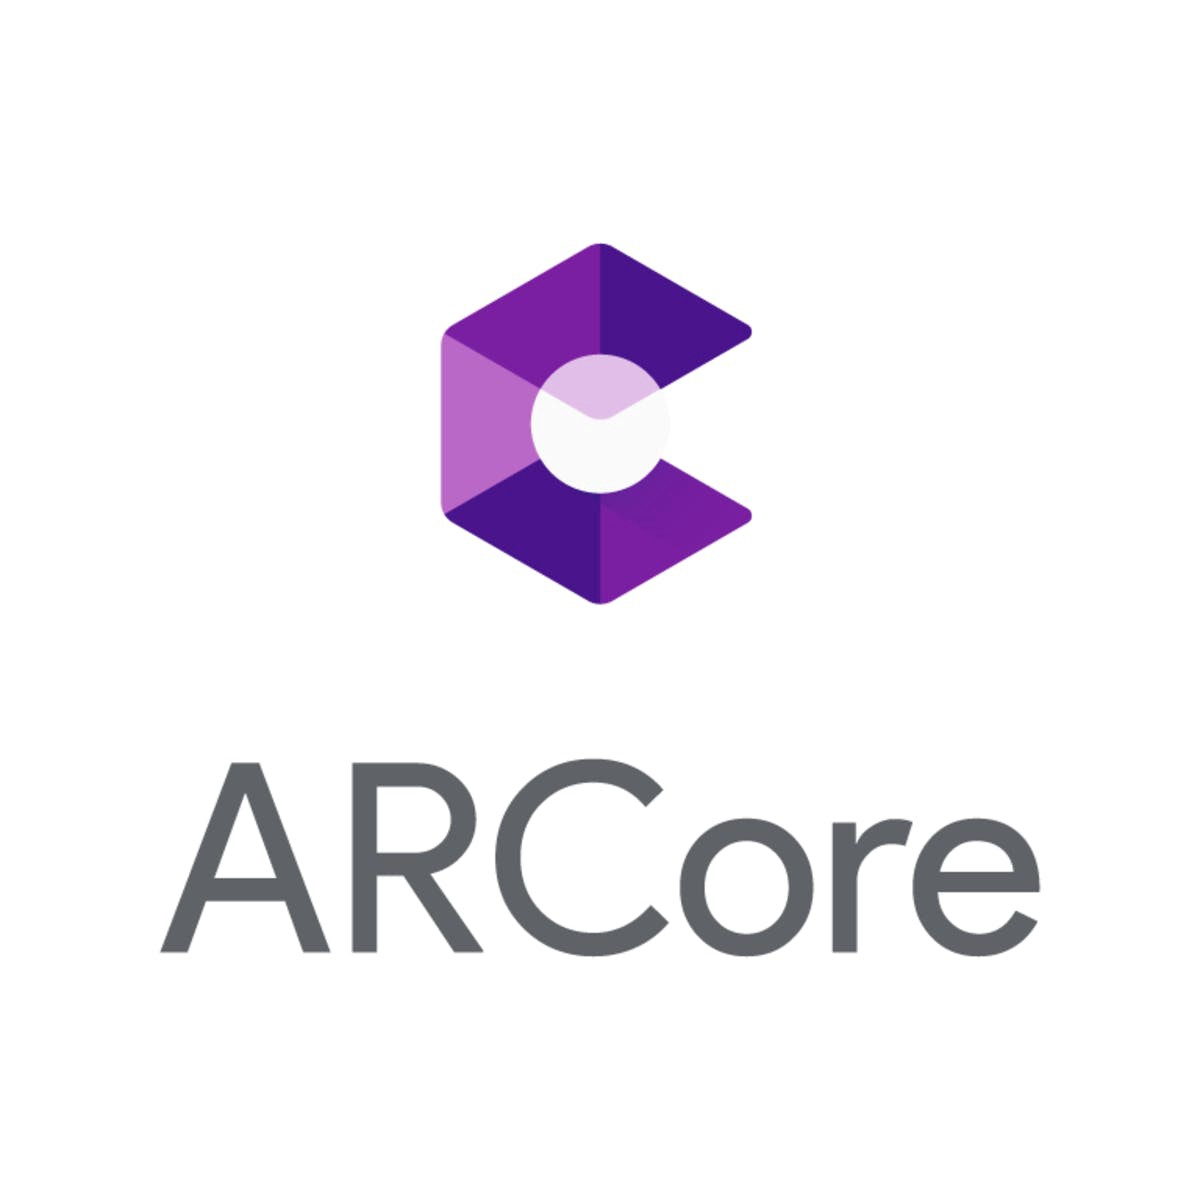 ARCore, Sceneform & Augmented Images #2 Android AR - Coinmonks - Medium